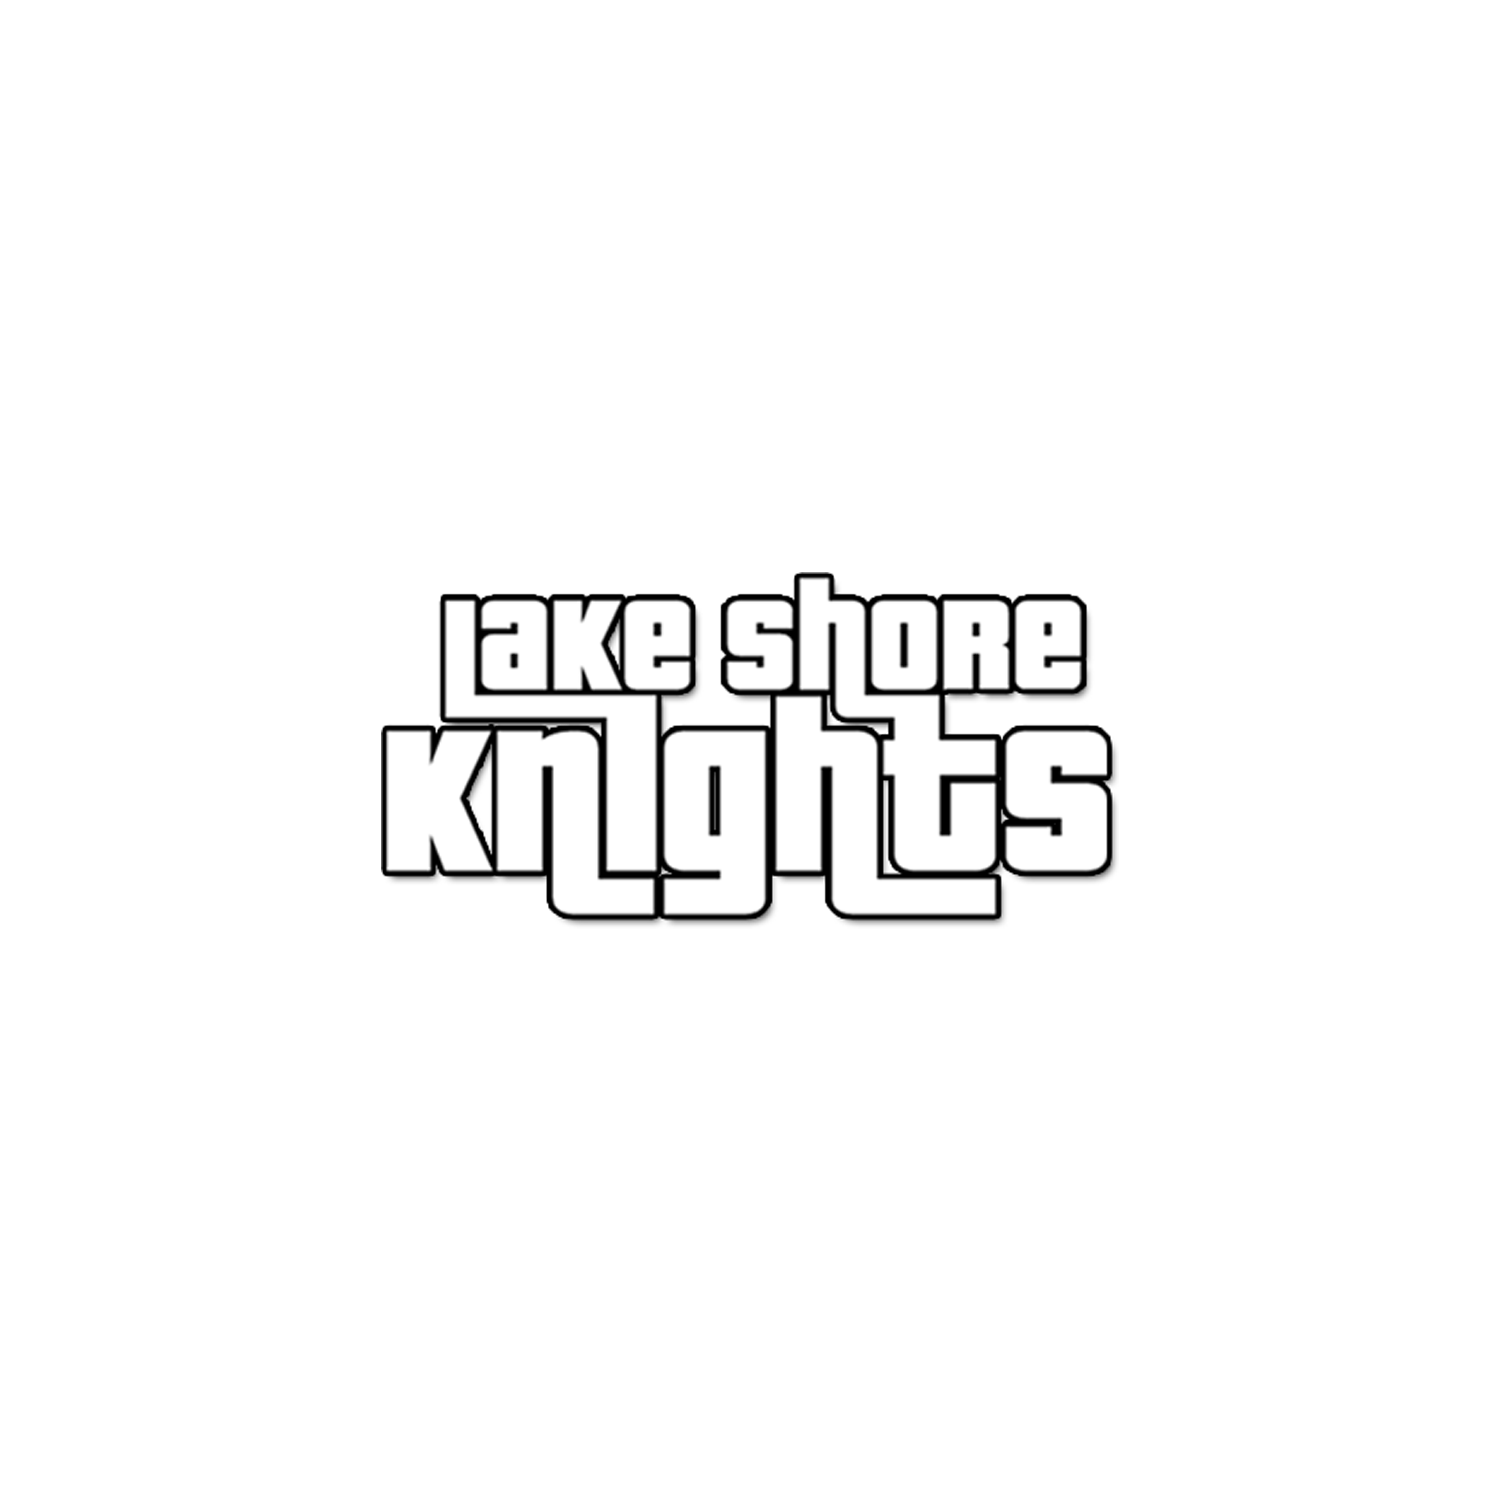 Lake Shore Knights